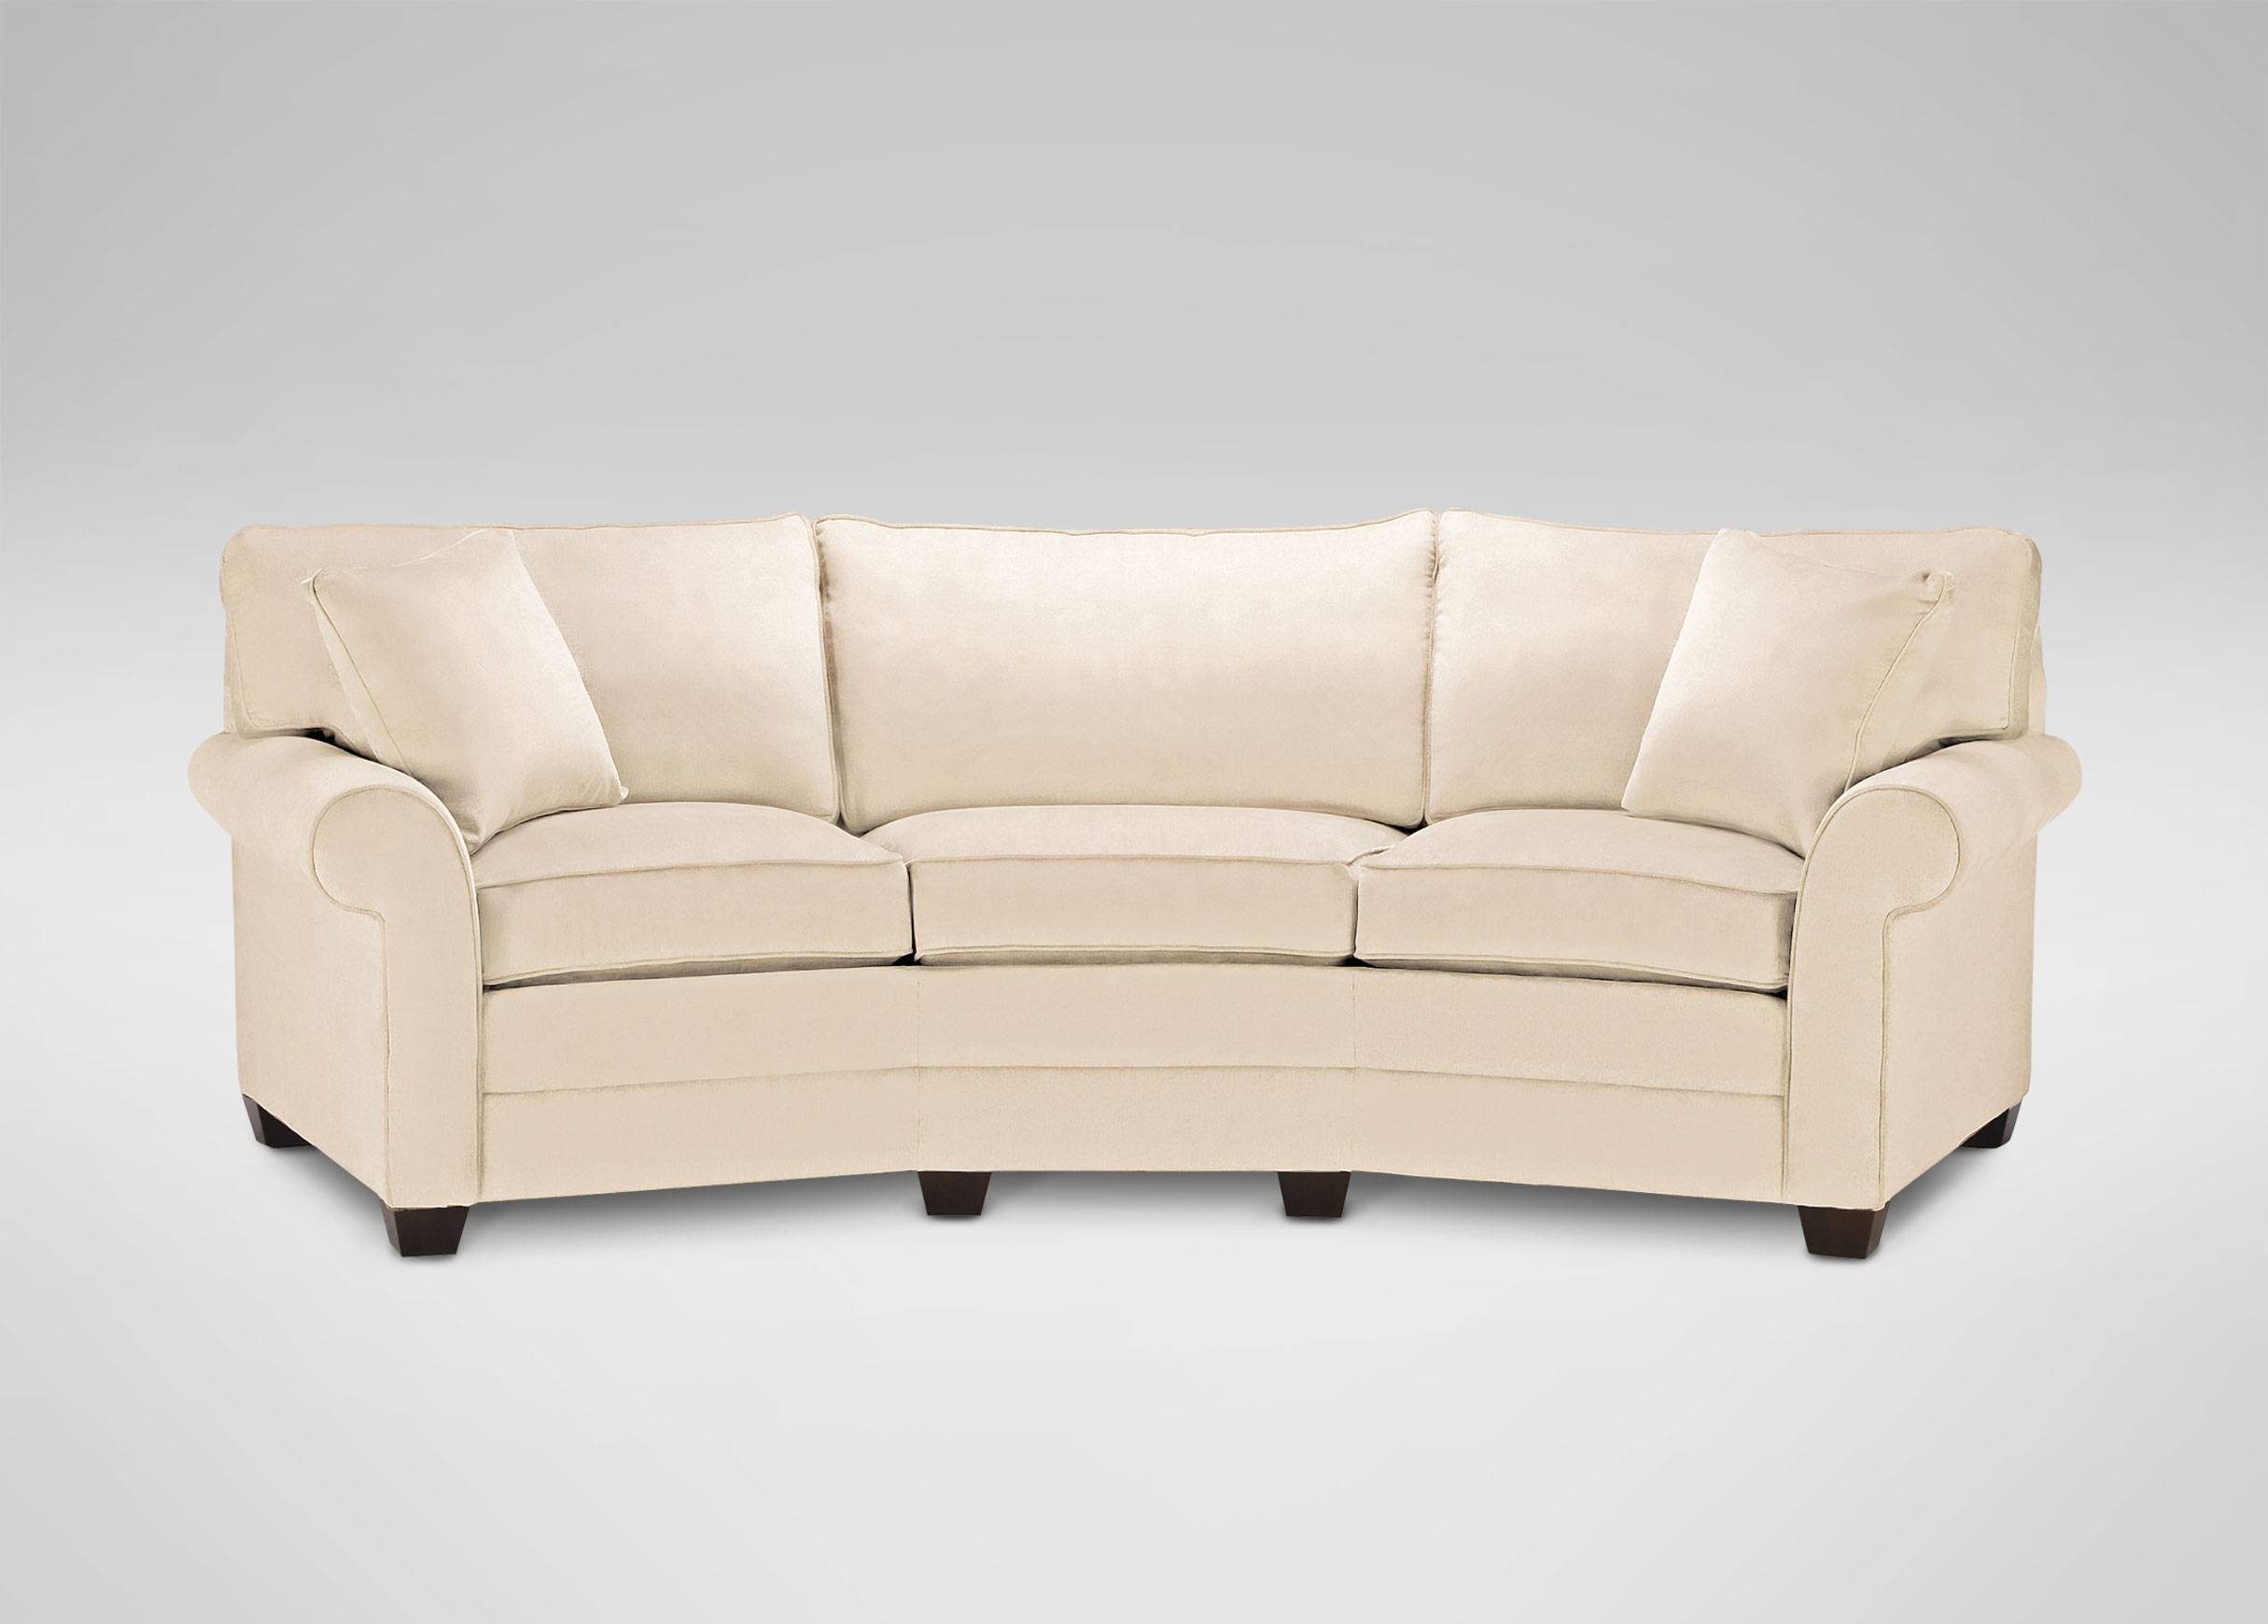 Bennett Conversation Sofa | Sofas & Loveseats regarding Conversation Sofa Sectional (Image 3 of 30)